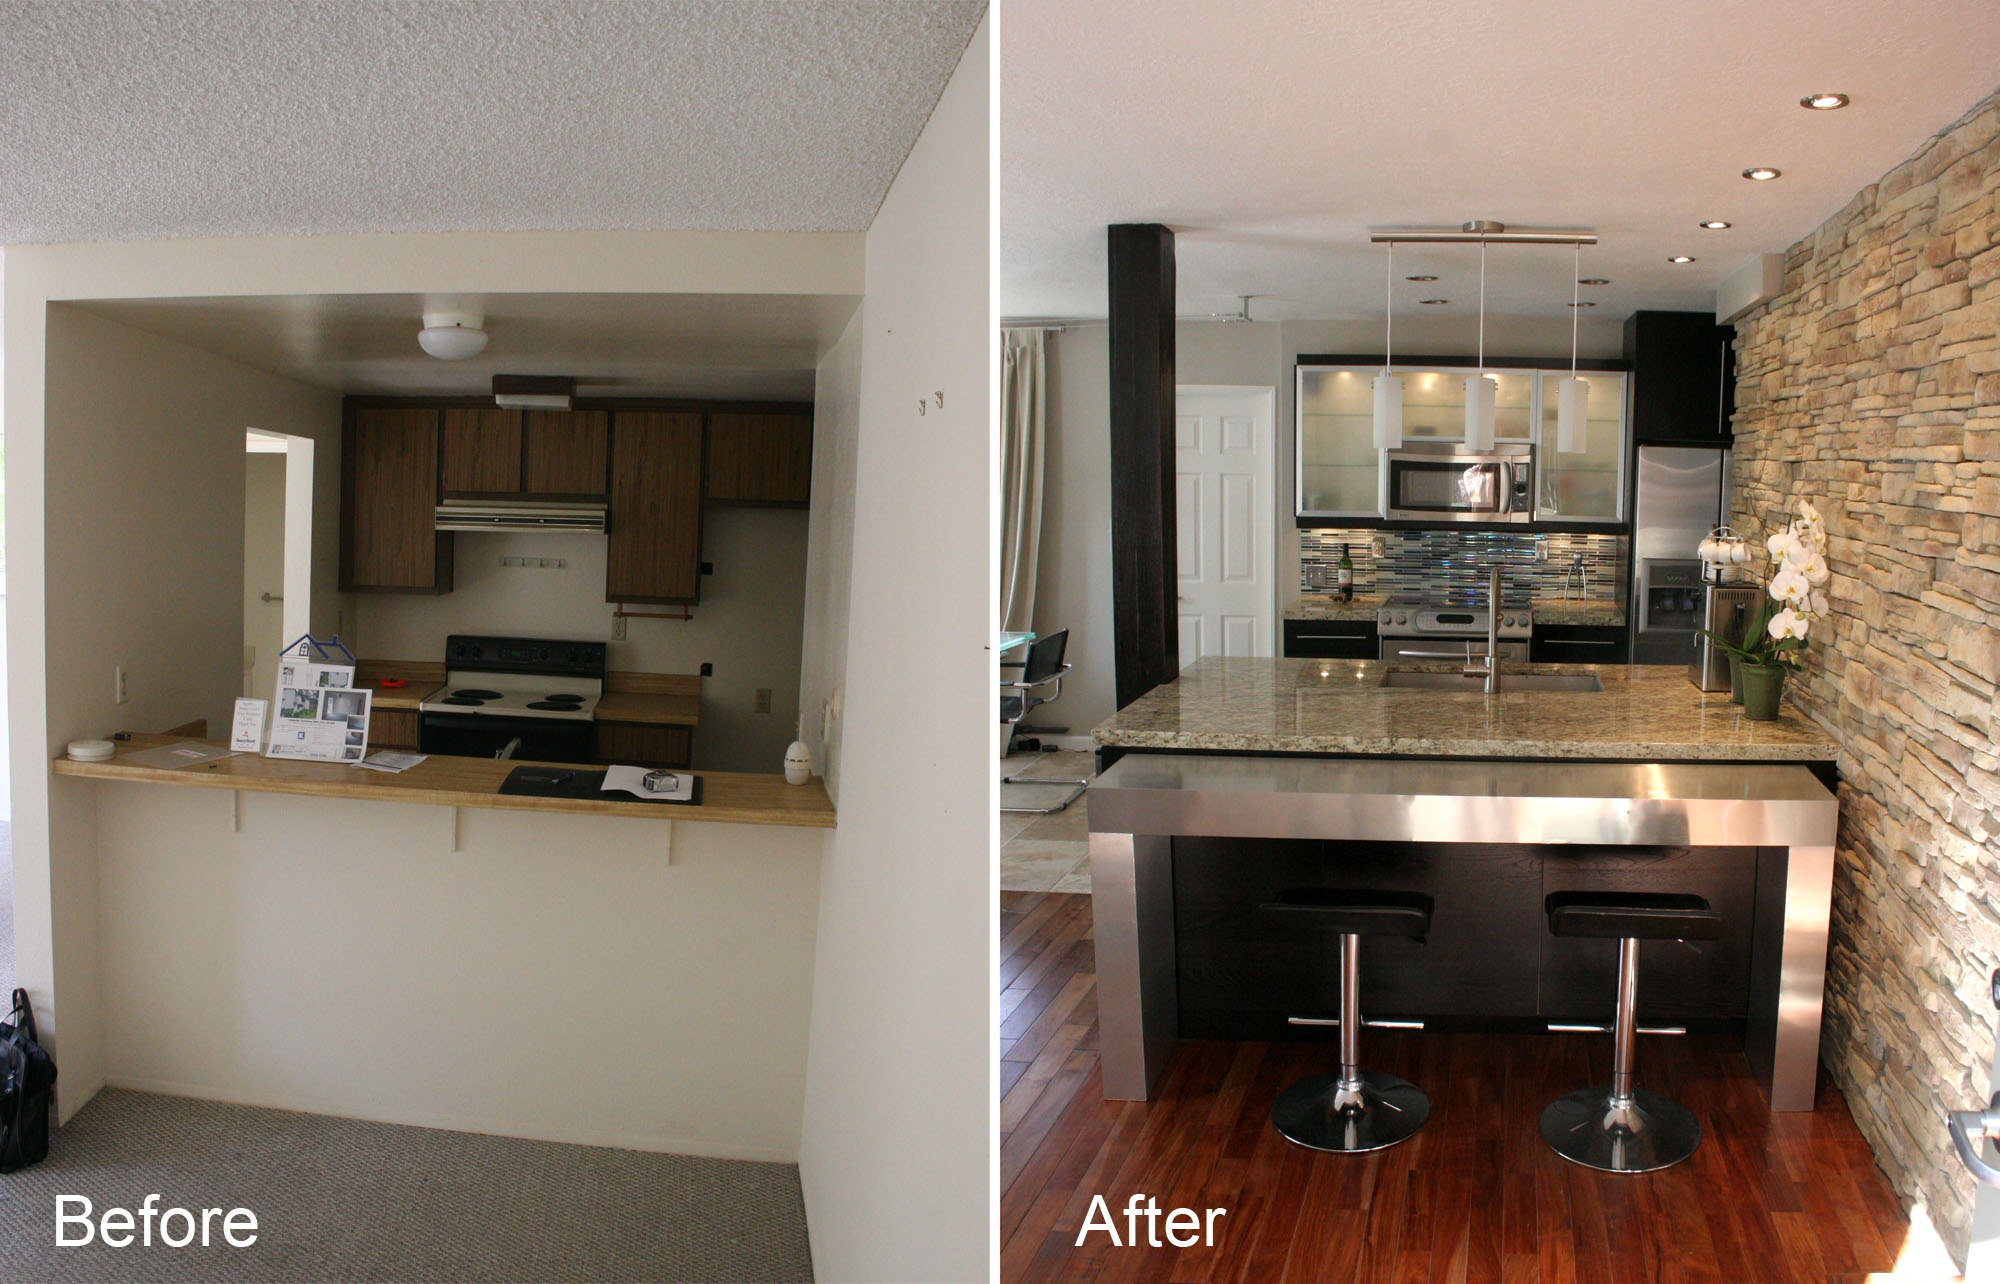 Renovation Ideas Before And After Interesting Before And After Kitchen Remodel  Home Design Review